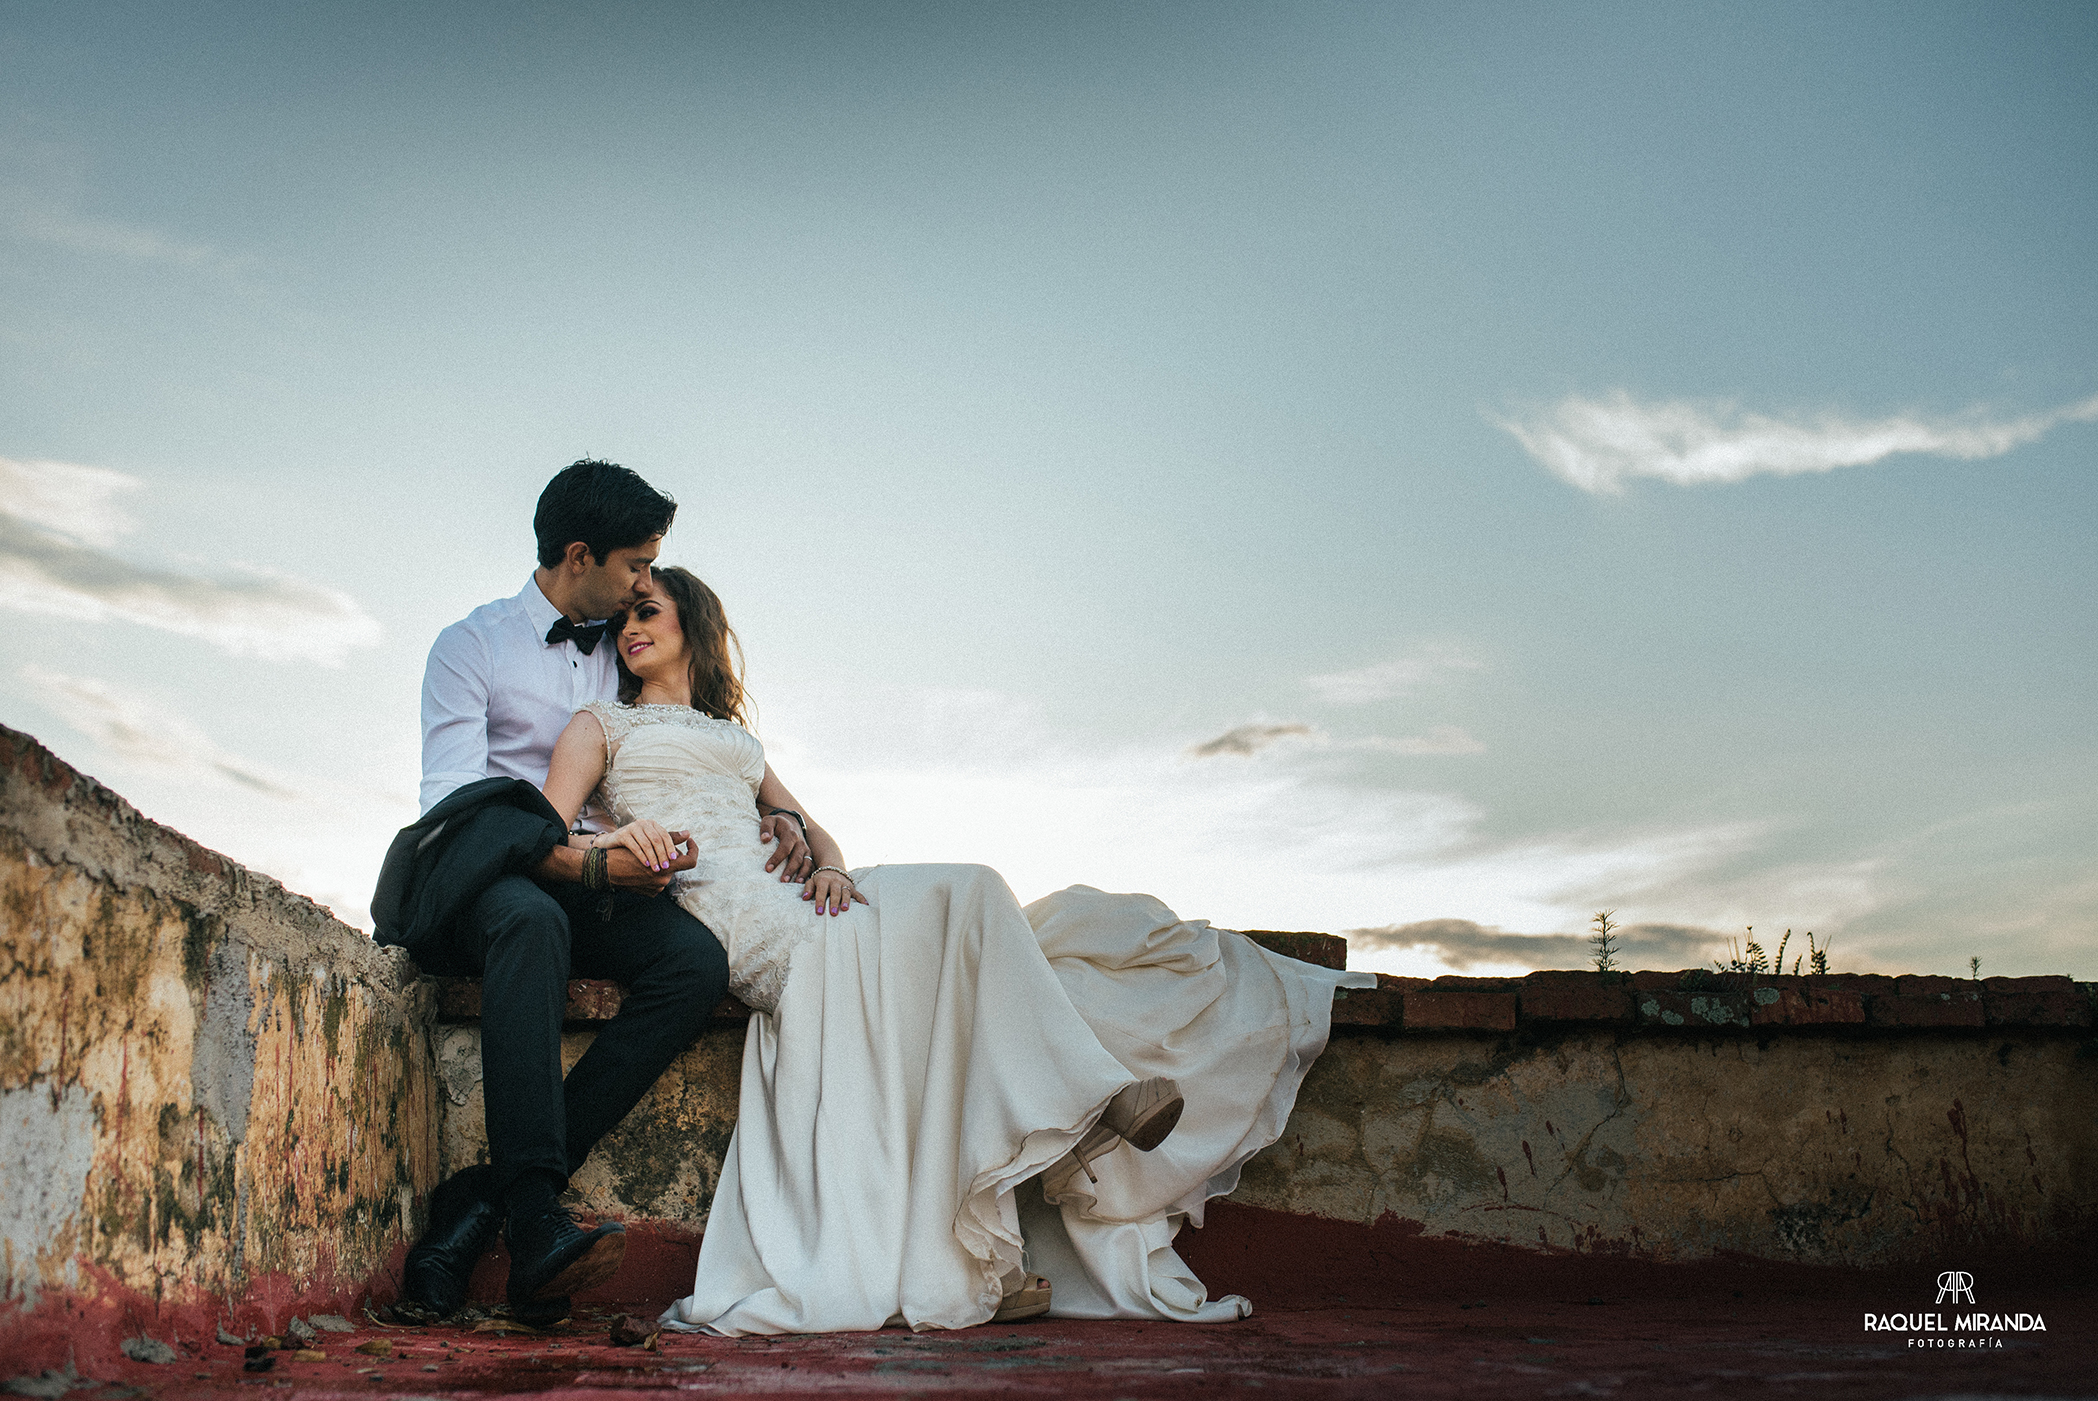 raquel miranda fotografía - thash the dress - karen&luis-7.jpg